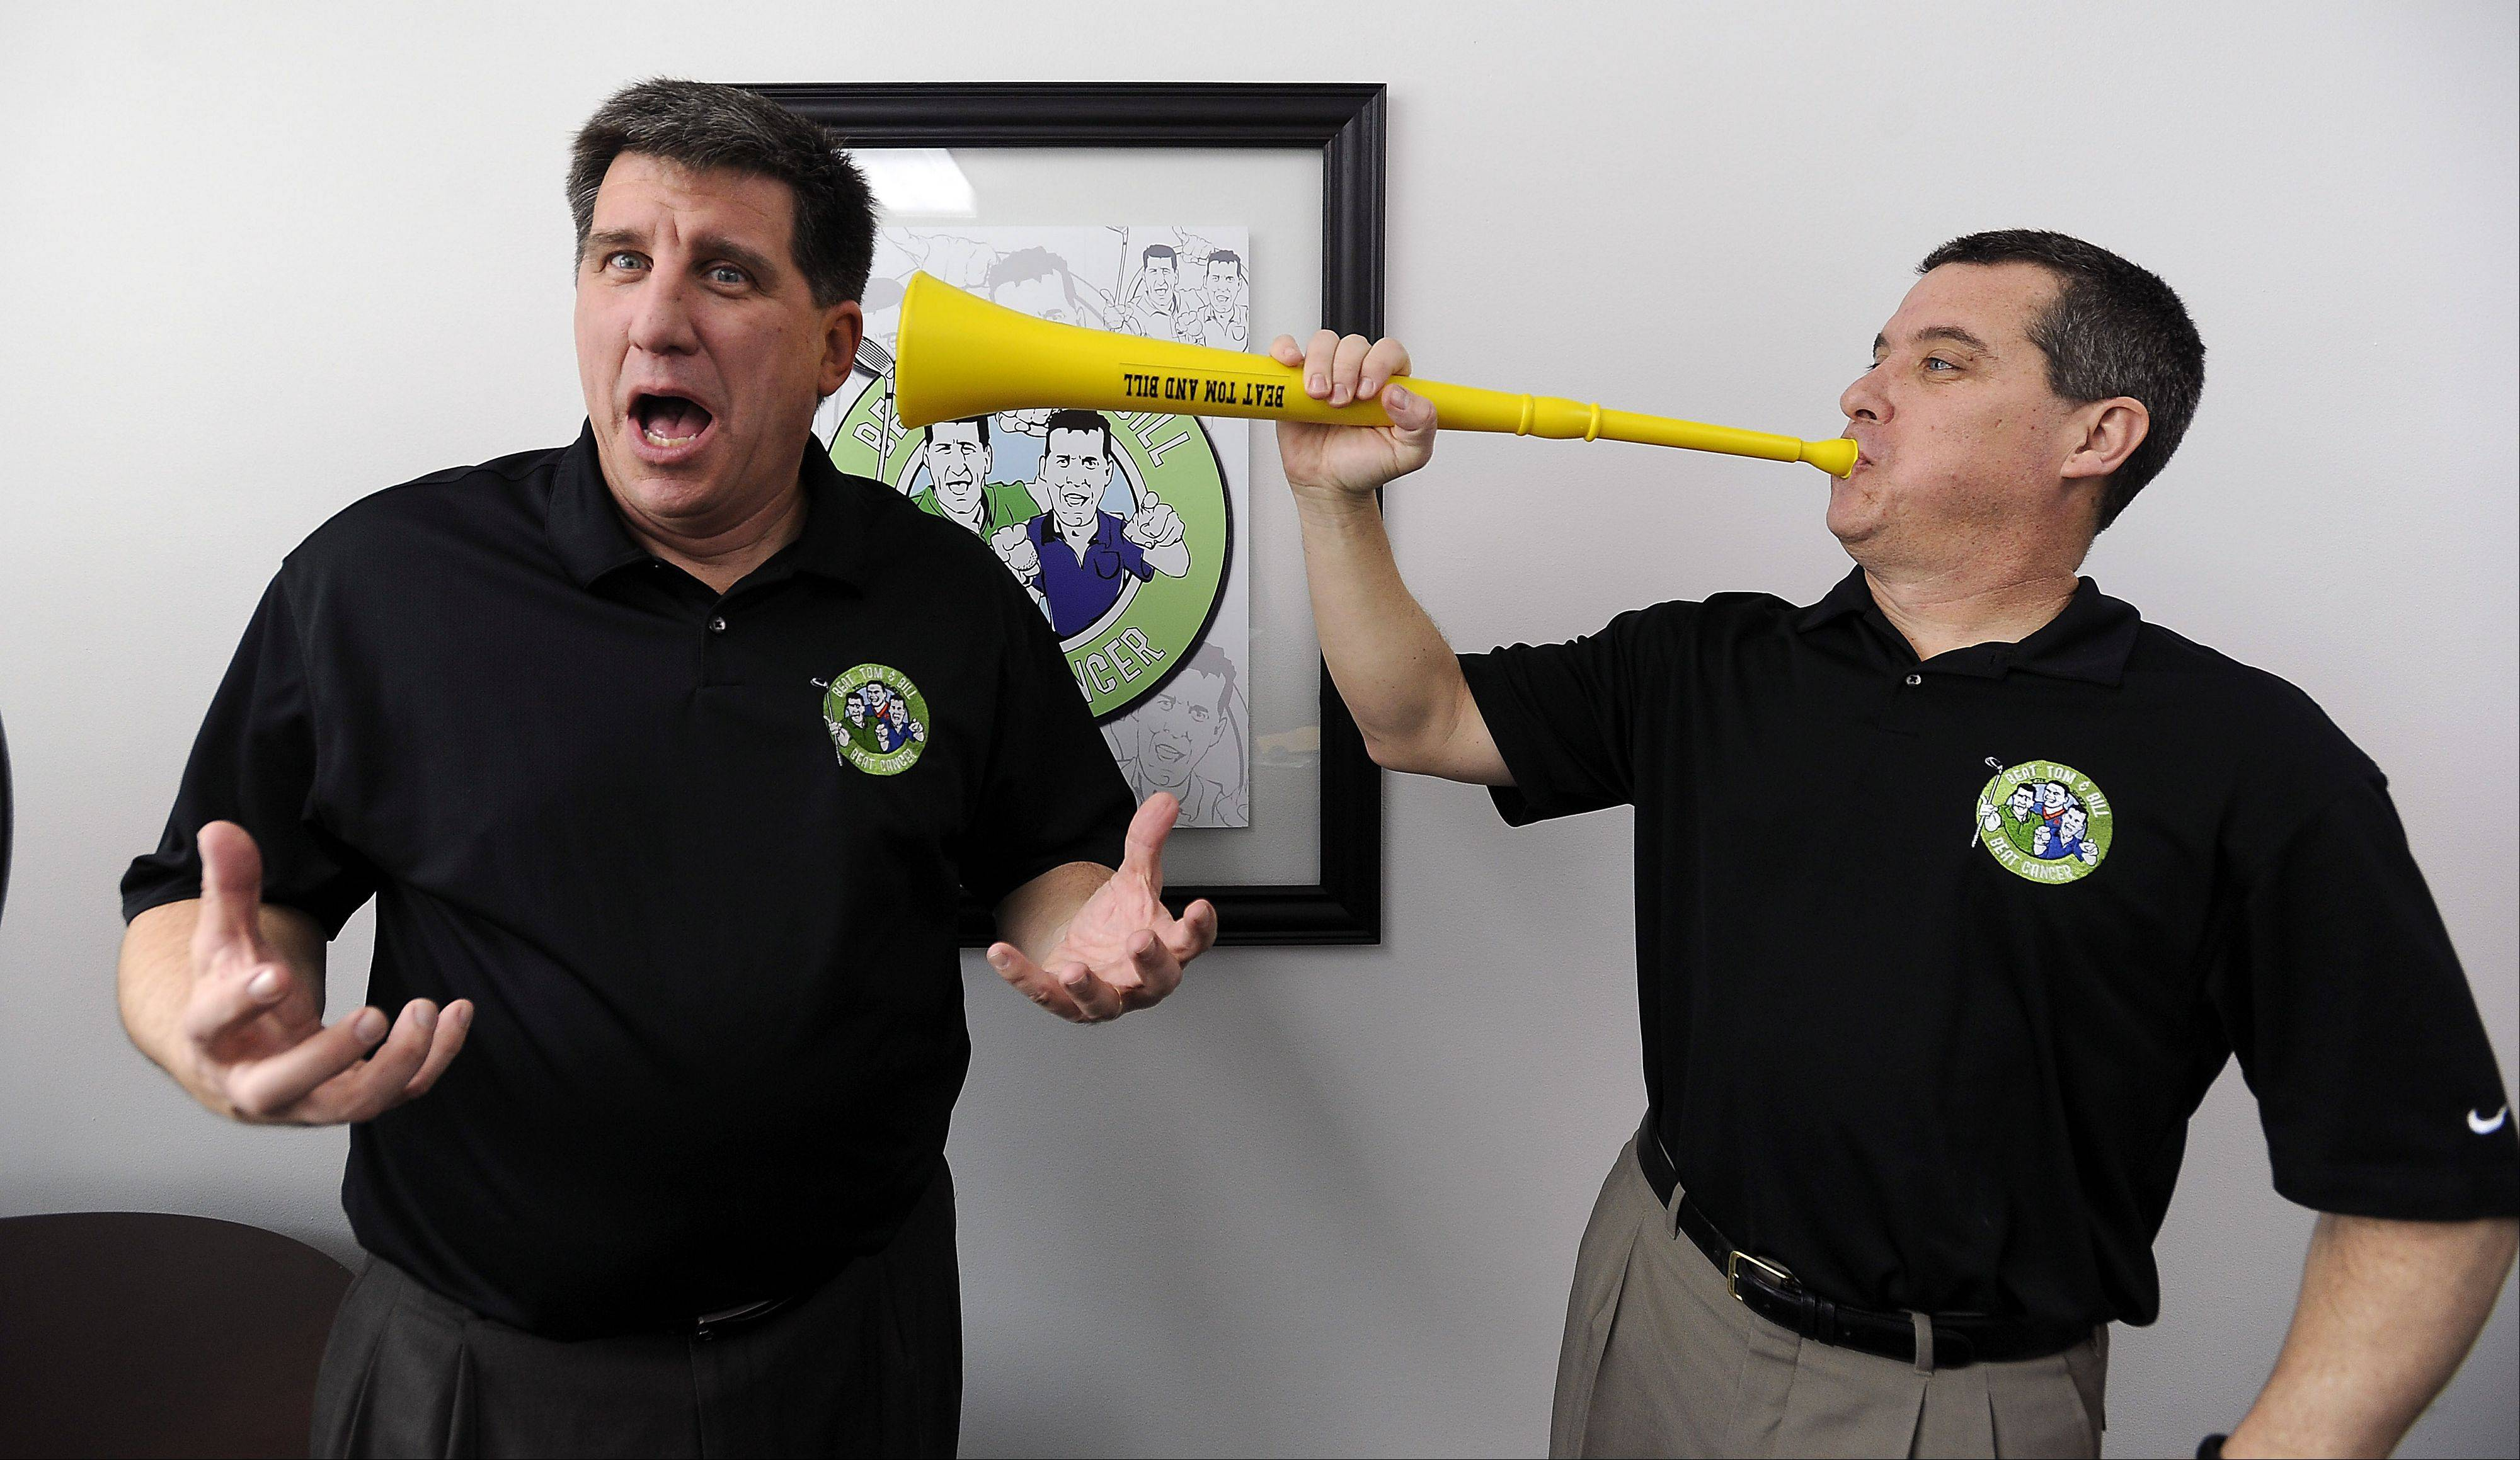 Nothing like a blast from a vuvuzela to get attention for the Beat Tom & Bill Foundation's annual golf outing and charity event. Brothers Tom, left, and Bill Latourette orchestrate a wild and wacky outing that since 2002 has distributed almost $400,000 to local people affected by cancer.